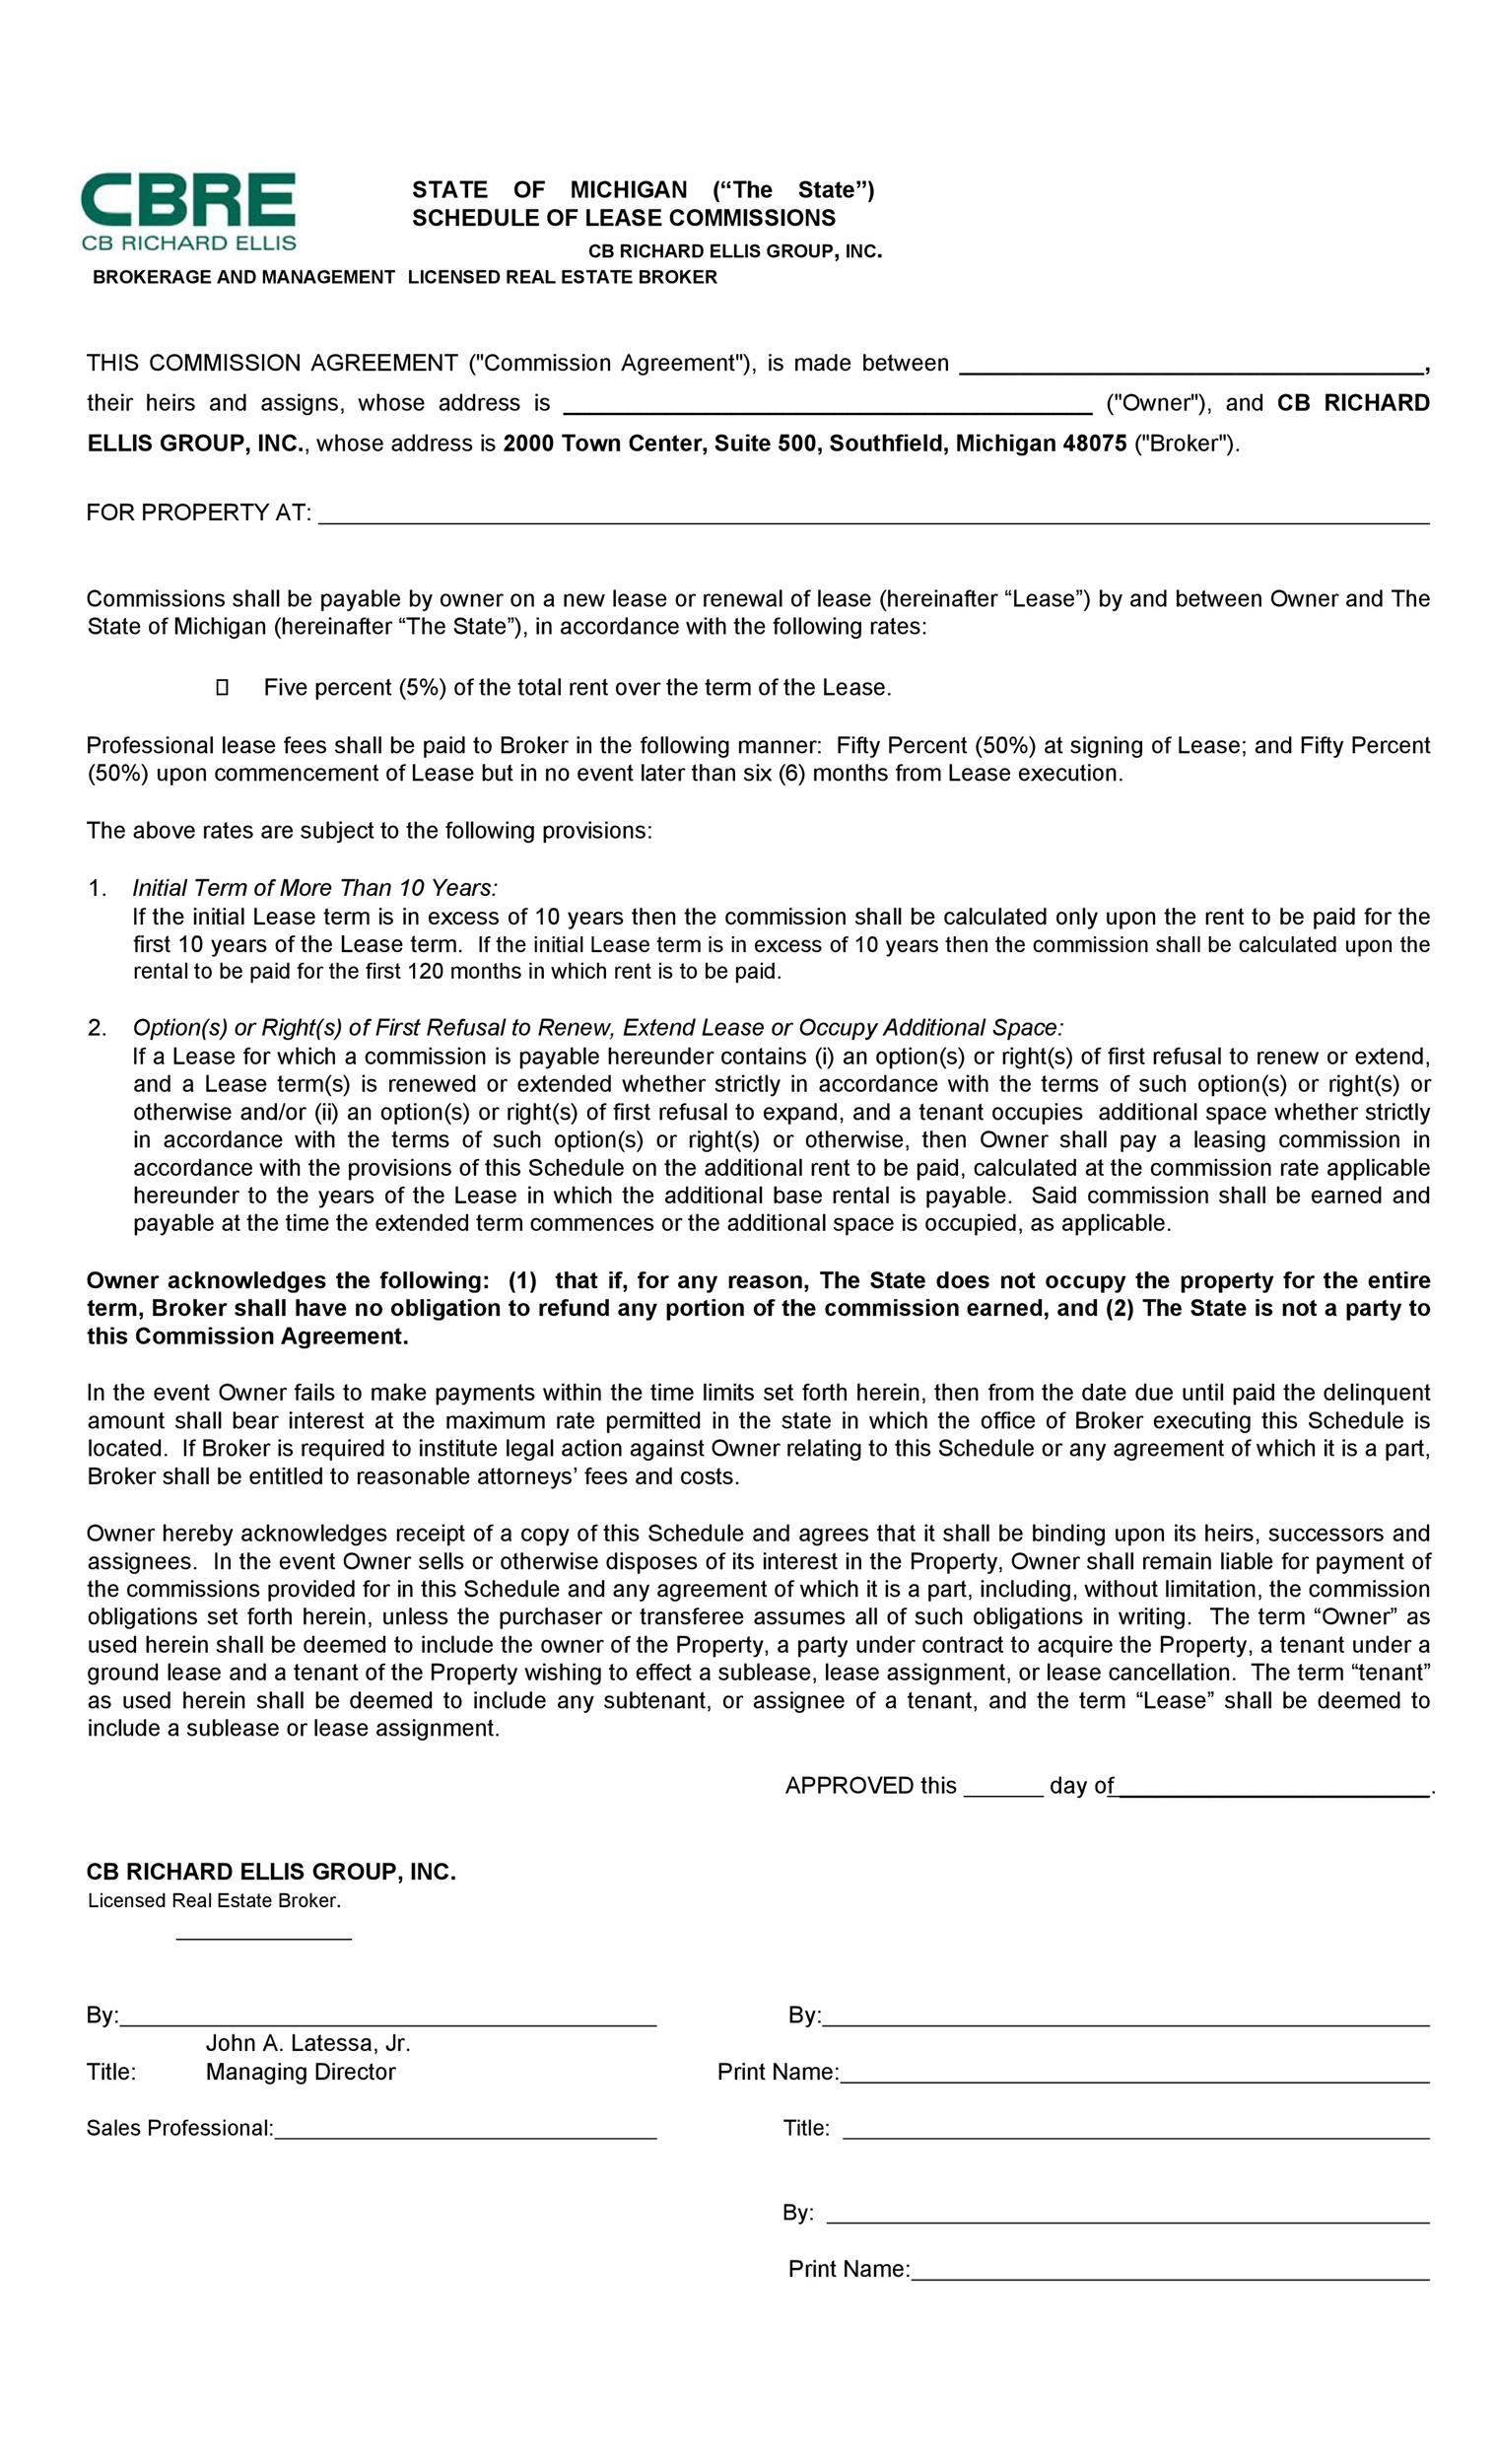 Free Commission Agreement Template 20